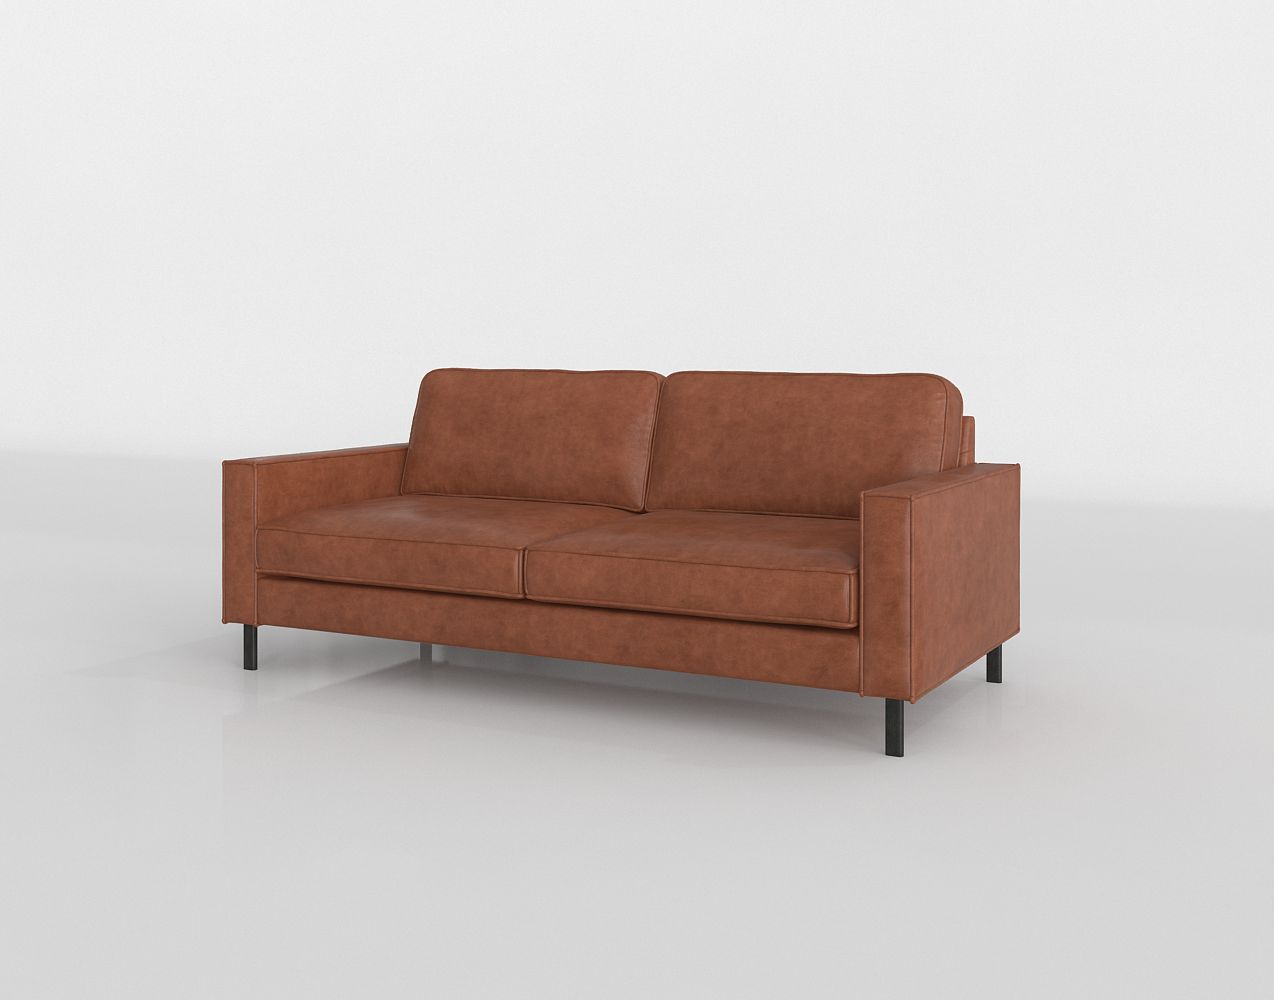 Sofa Bed Kwantum.Bank Pinto Sofa Kwantum Furniture Glancing Eye